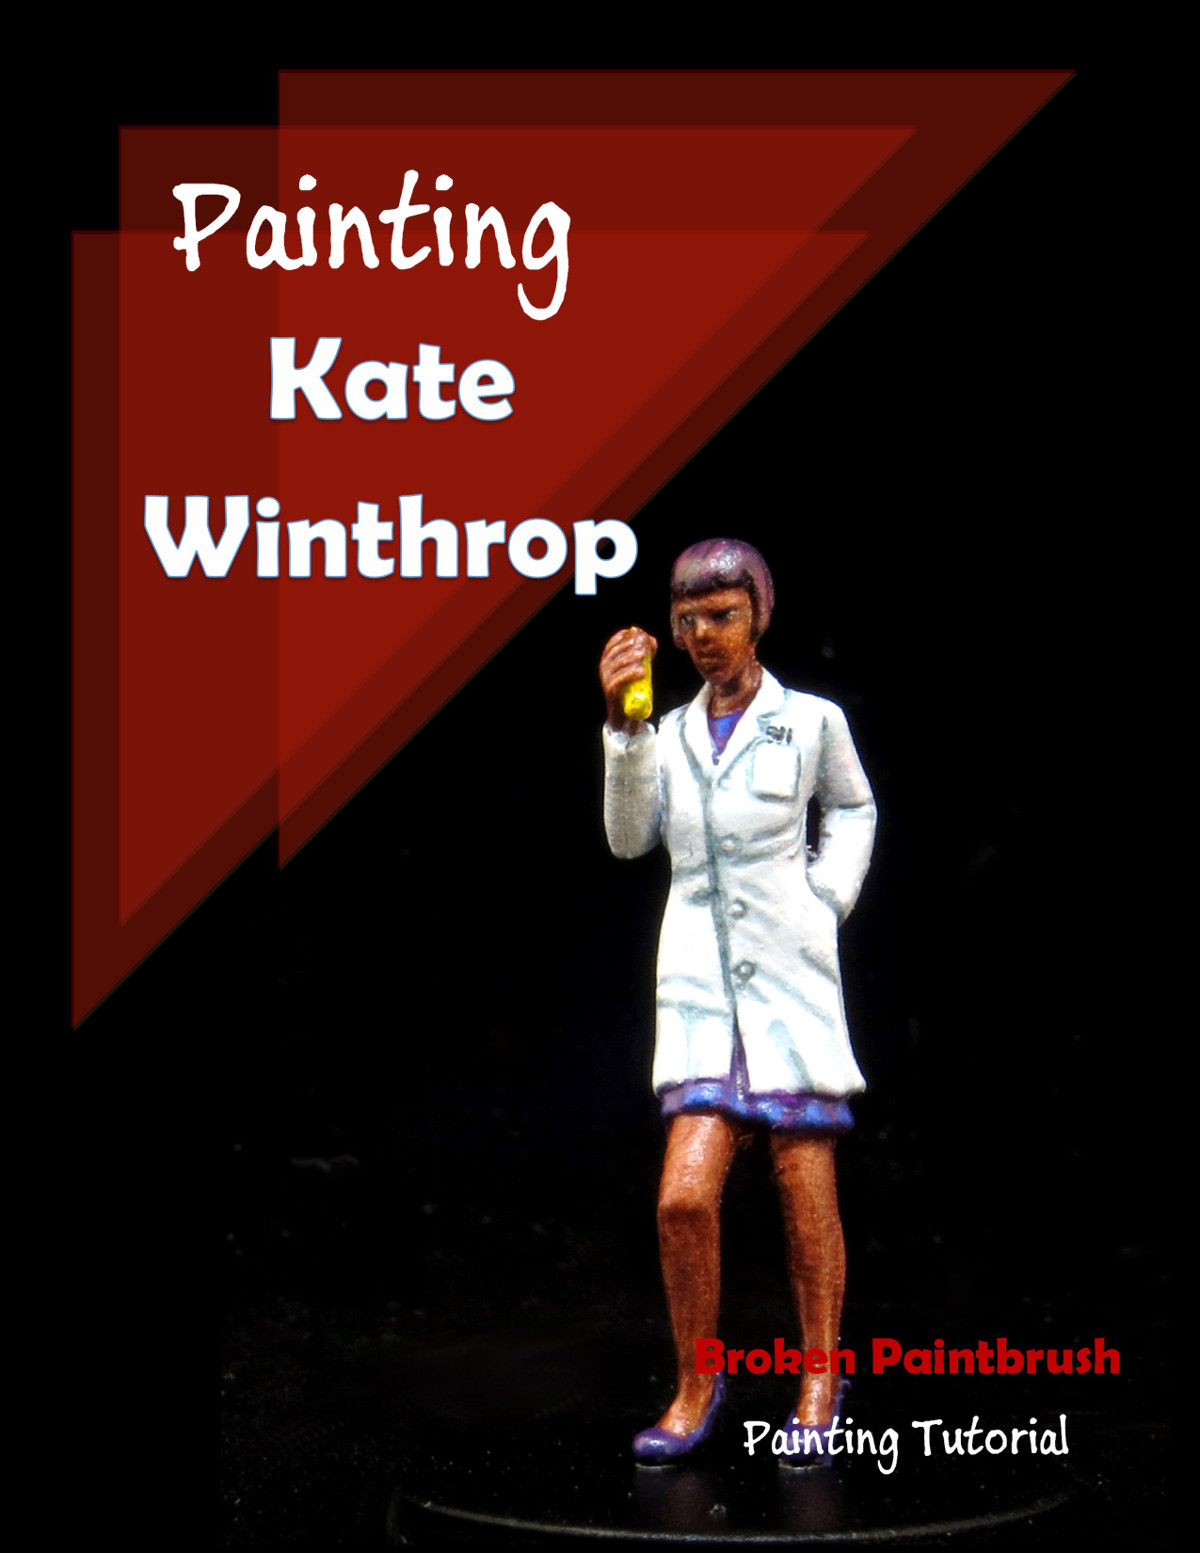 Painting Guide Kate Winthrop